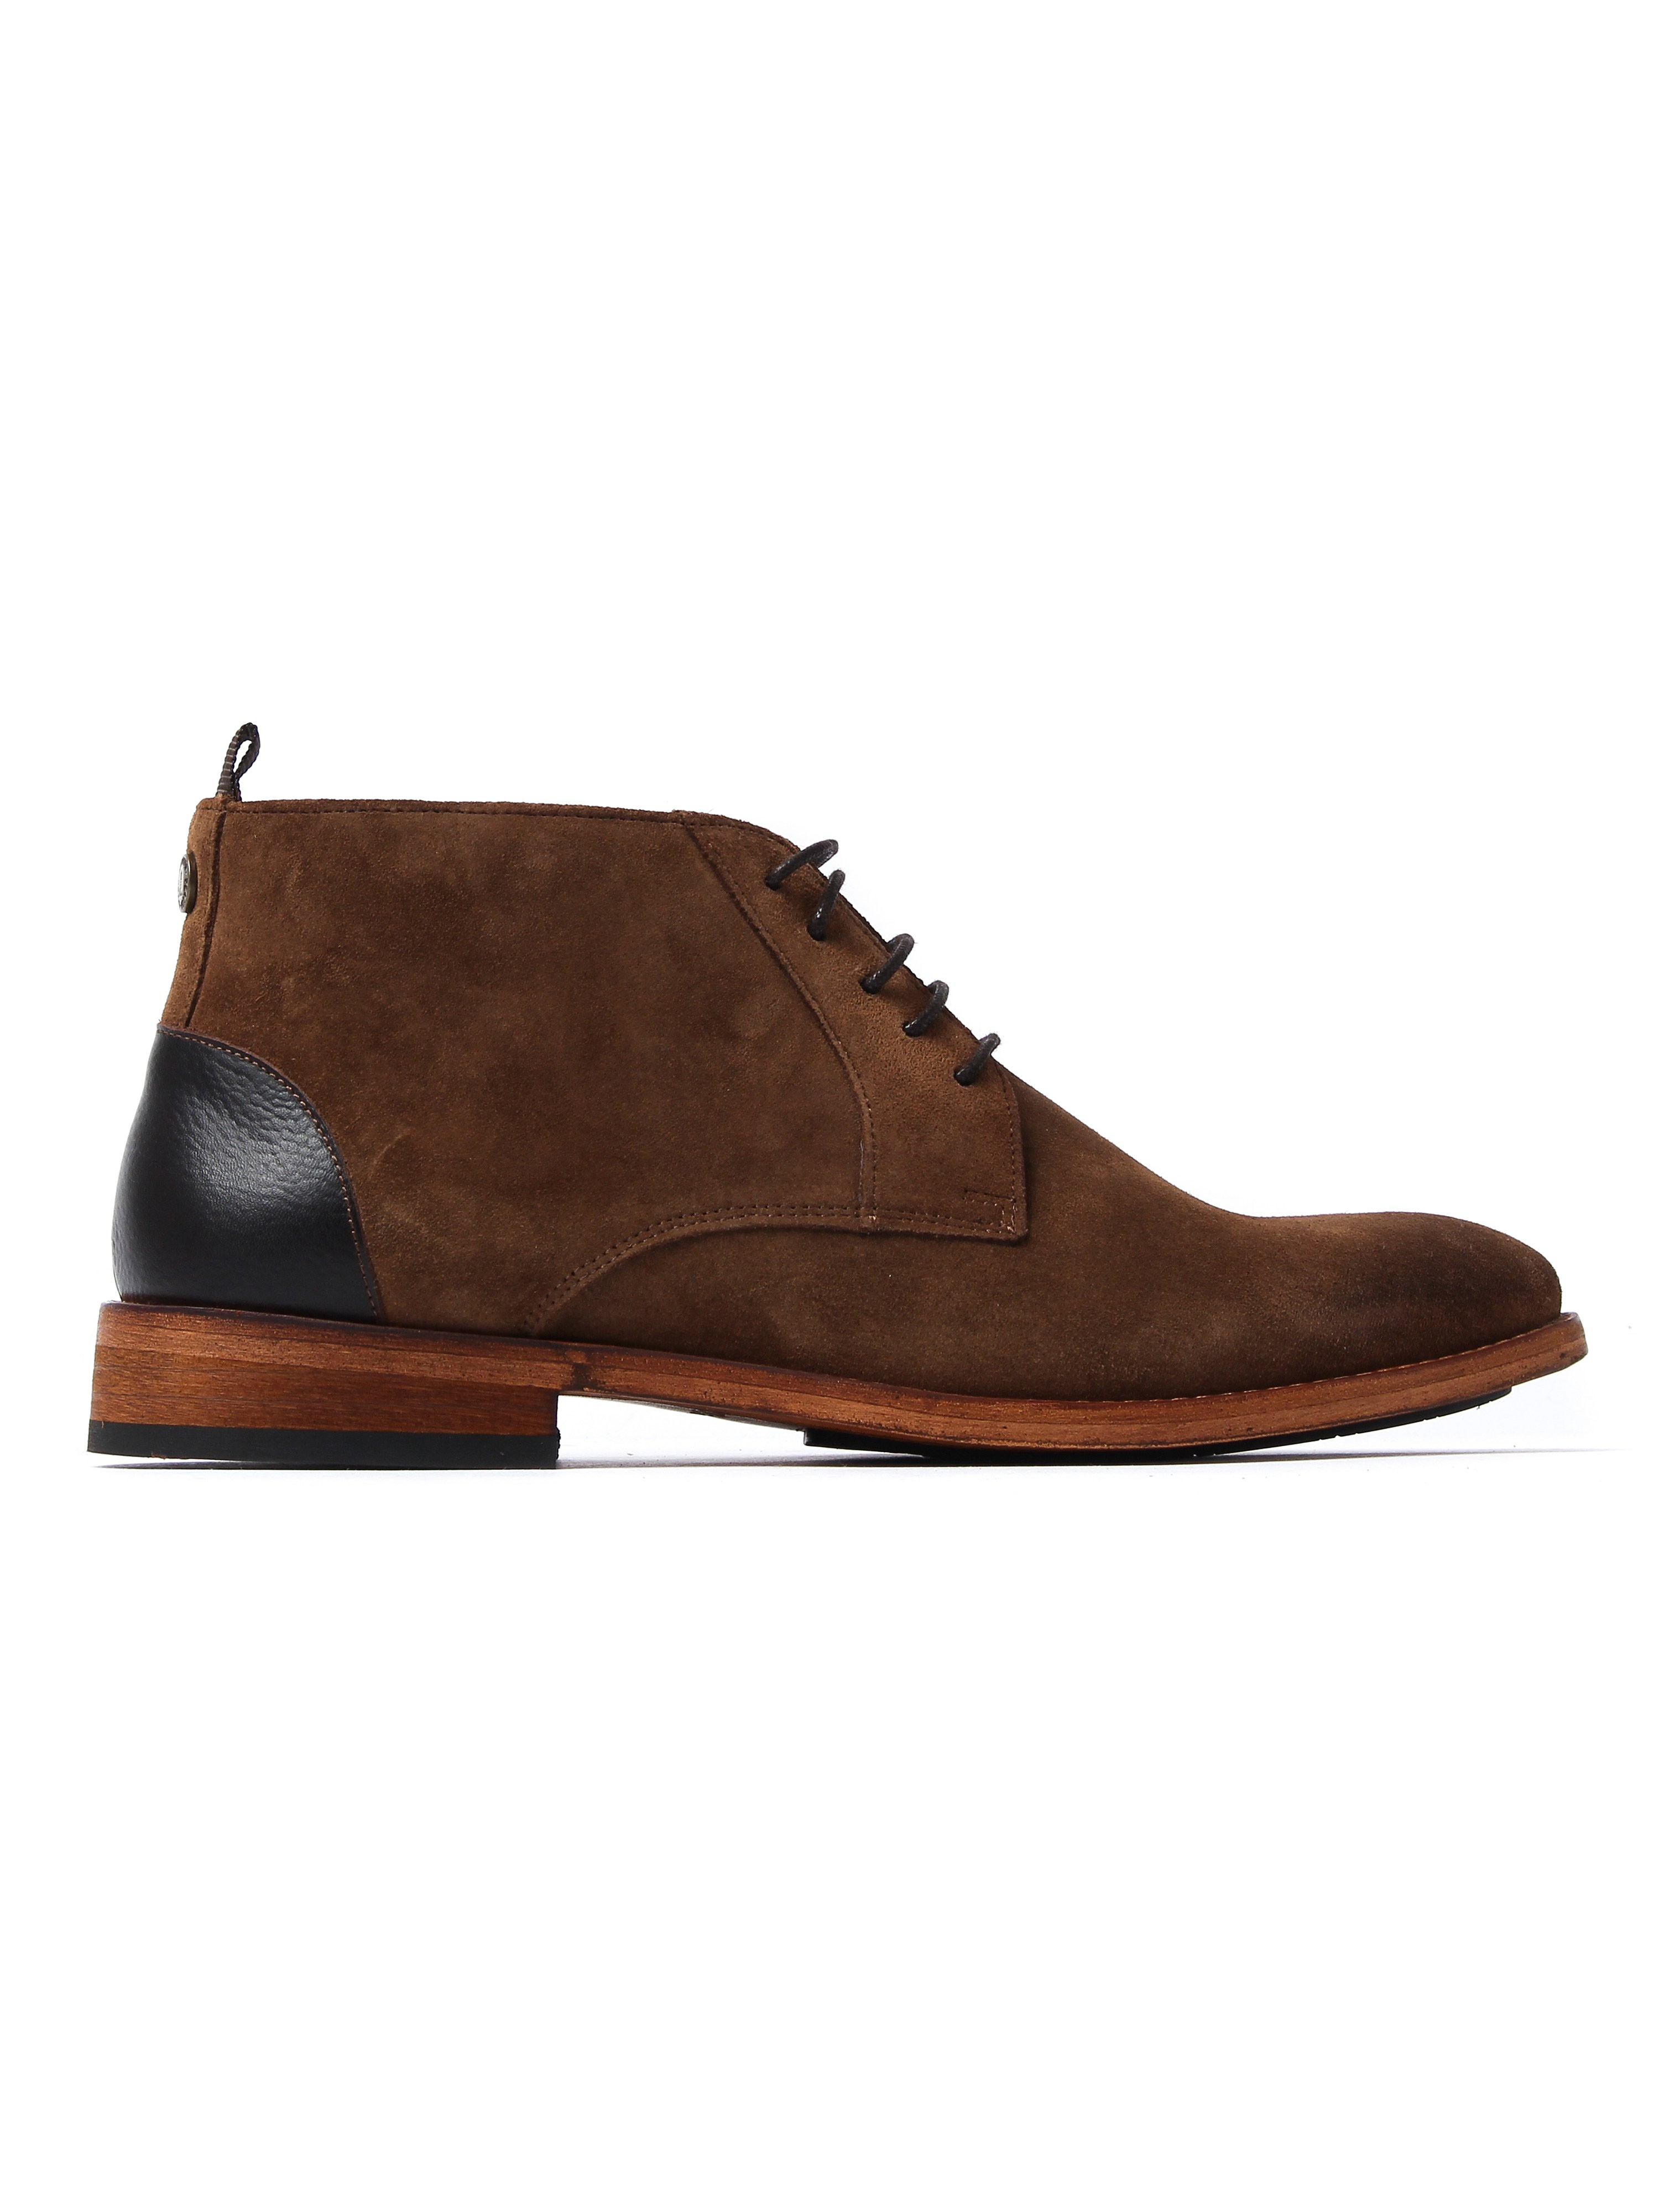 Barbour Men's Benwell Chukka Boots - Tabacco Suede